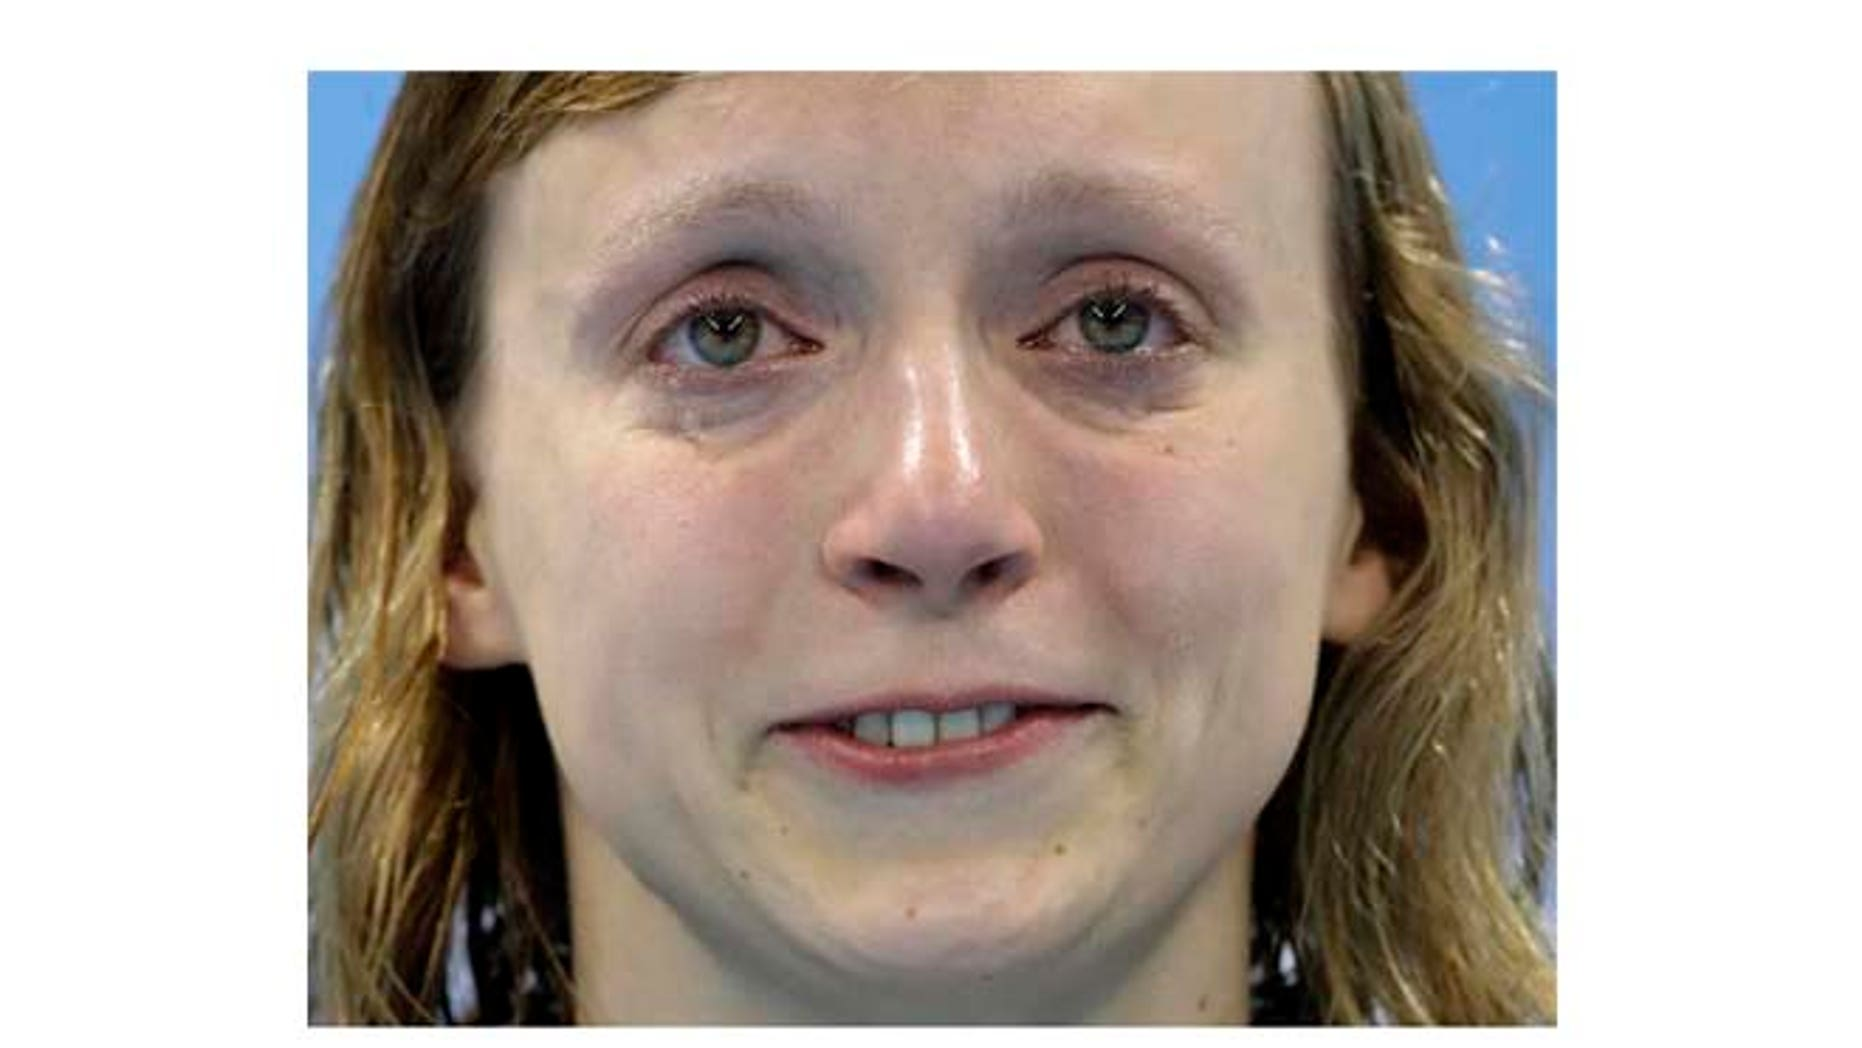 Aug. 12: Katie Ledecky cries, after winning gold, in the women's 800-meter freestyle medals ceremony during the swimming competitions at the 2016 Summer Olympics in Rio de Janeiro, Brazil.